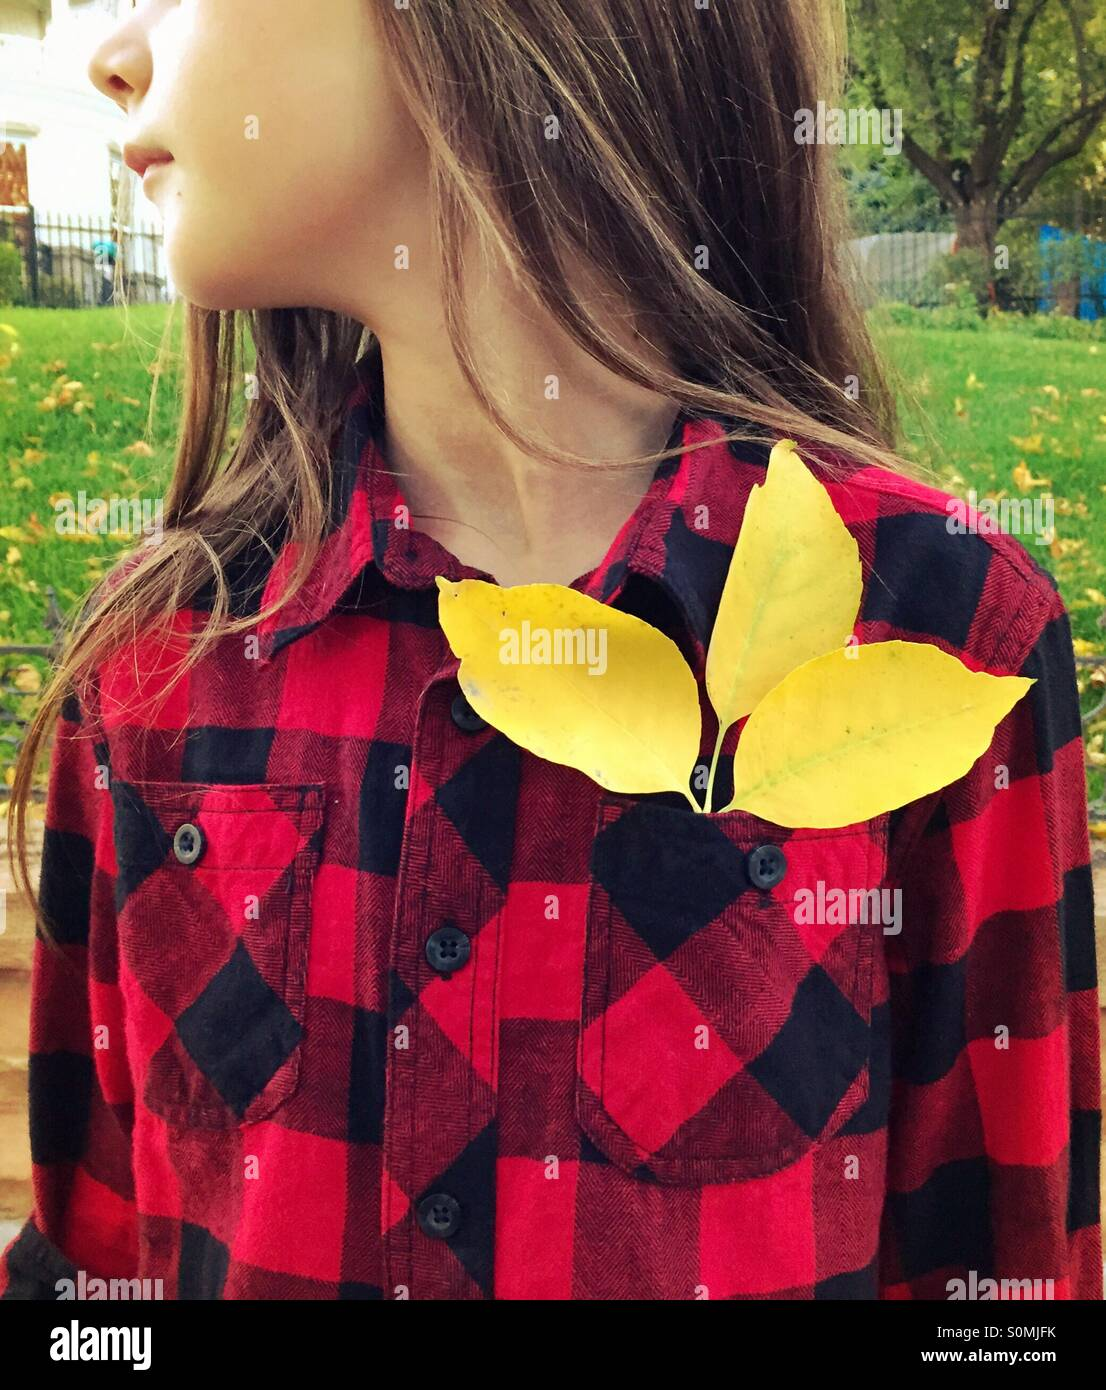 A young girl wearing Red and black buffalo-checked plaid shirt has 3 yellow leaves in her shirt pocket. - Stock Image